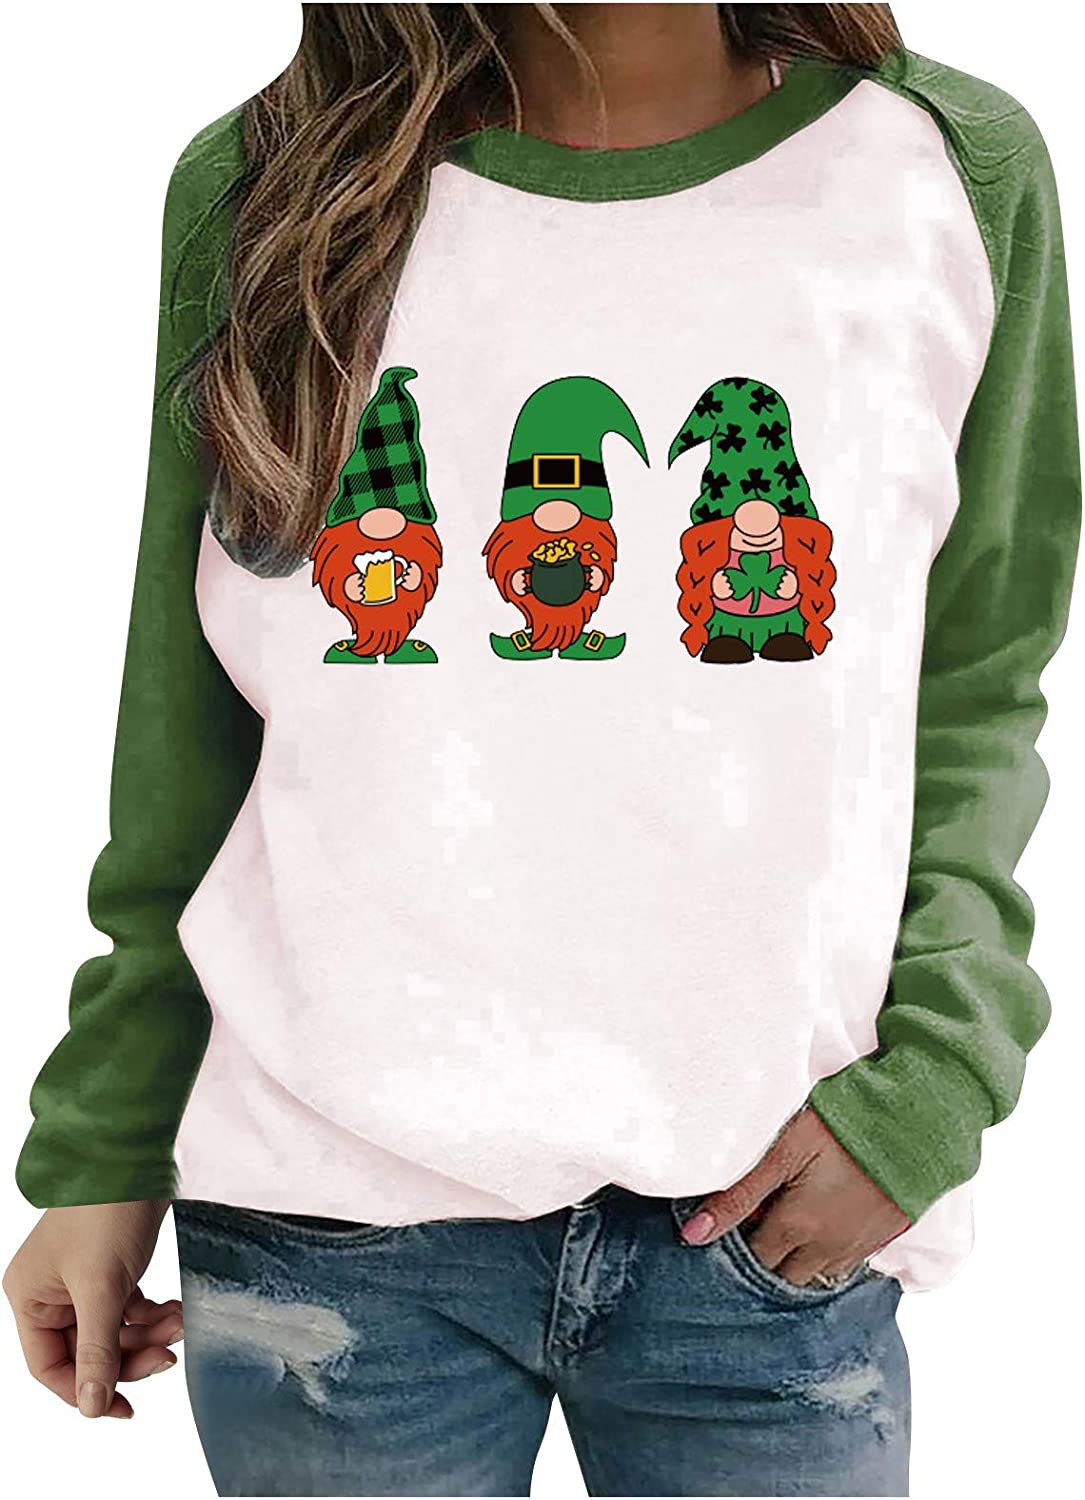 Women Gnome Shirt Long Sleeve St. Crewneck Top Popular shop is the lowest price challenge Tee overseas Patrick's Day